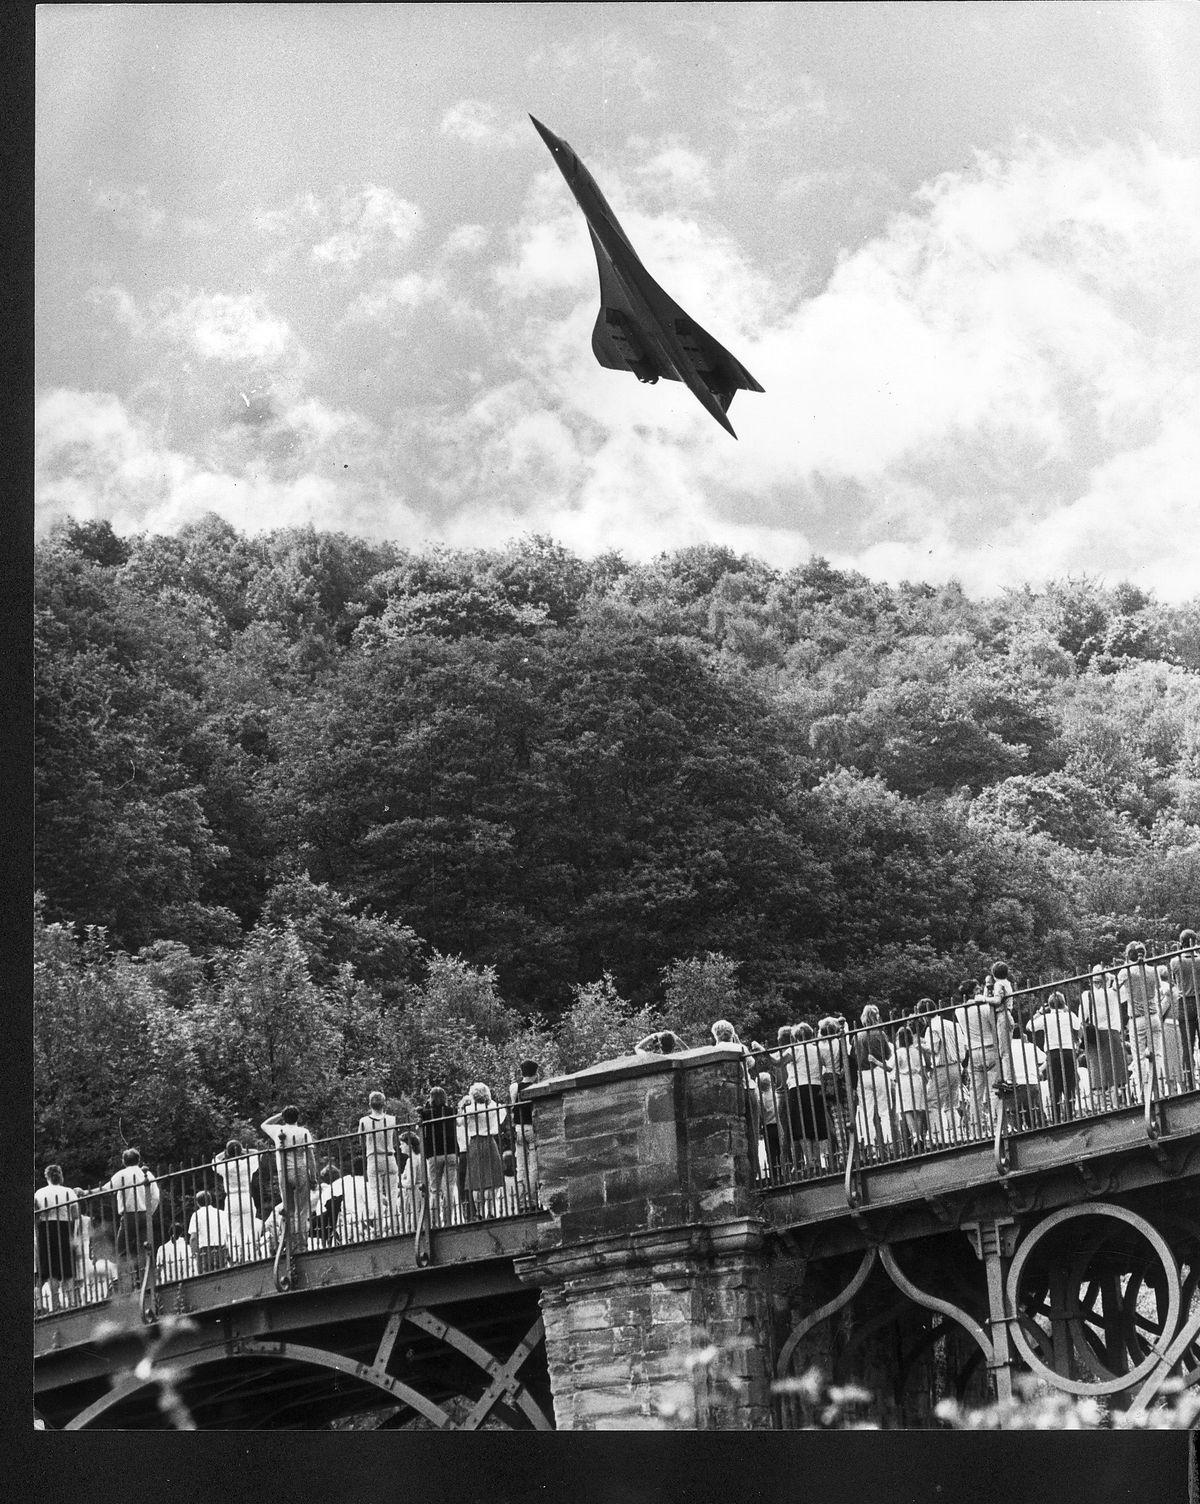 Concorde soars over the Iron Bridge on its way to Shrewsbury Flower Show in 1987. Picture: Bob Craig